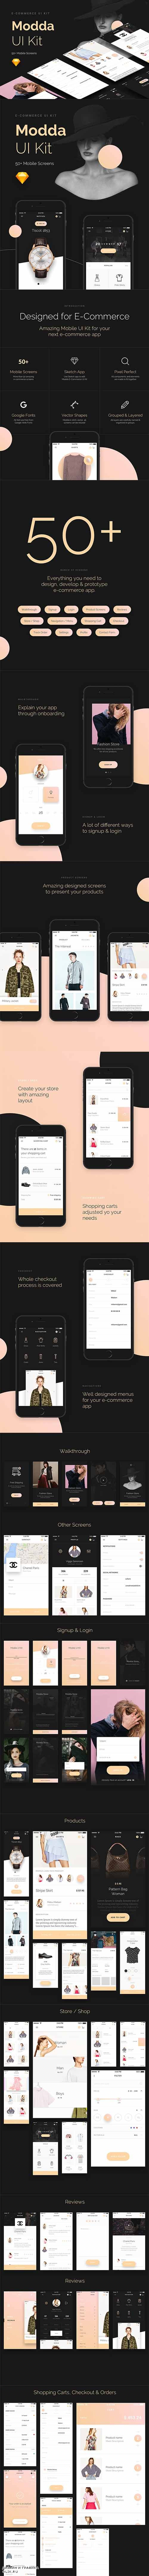 Modda - E-Commerce Mobile UI Kit - CM 1624640